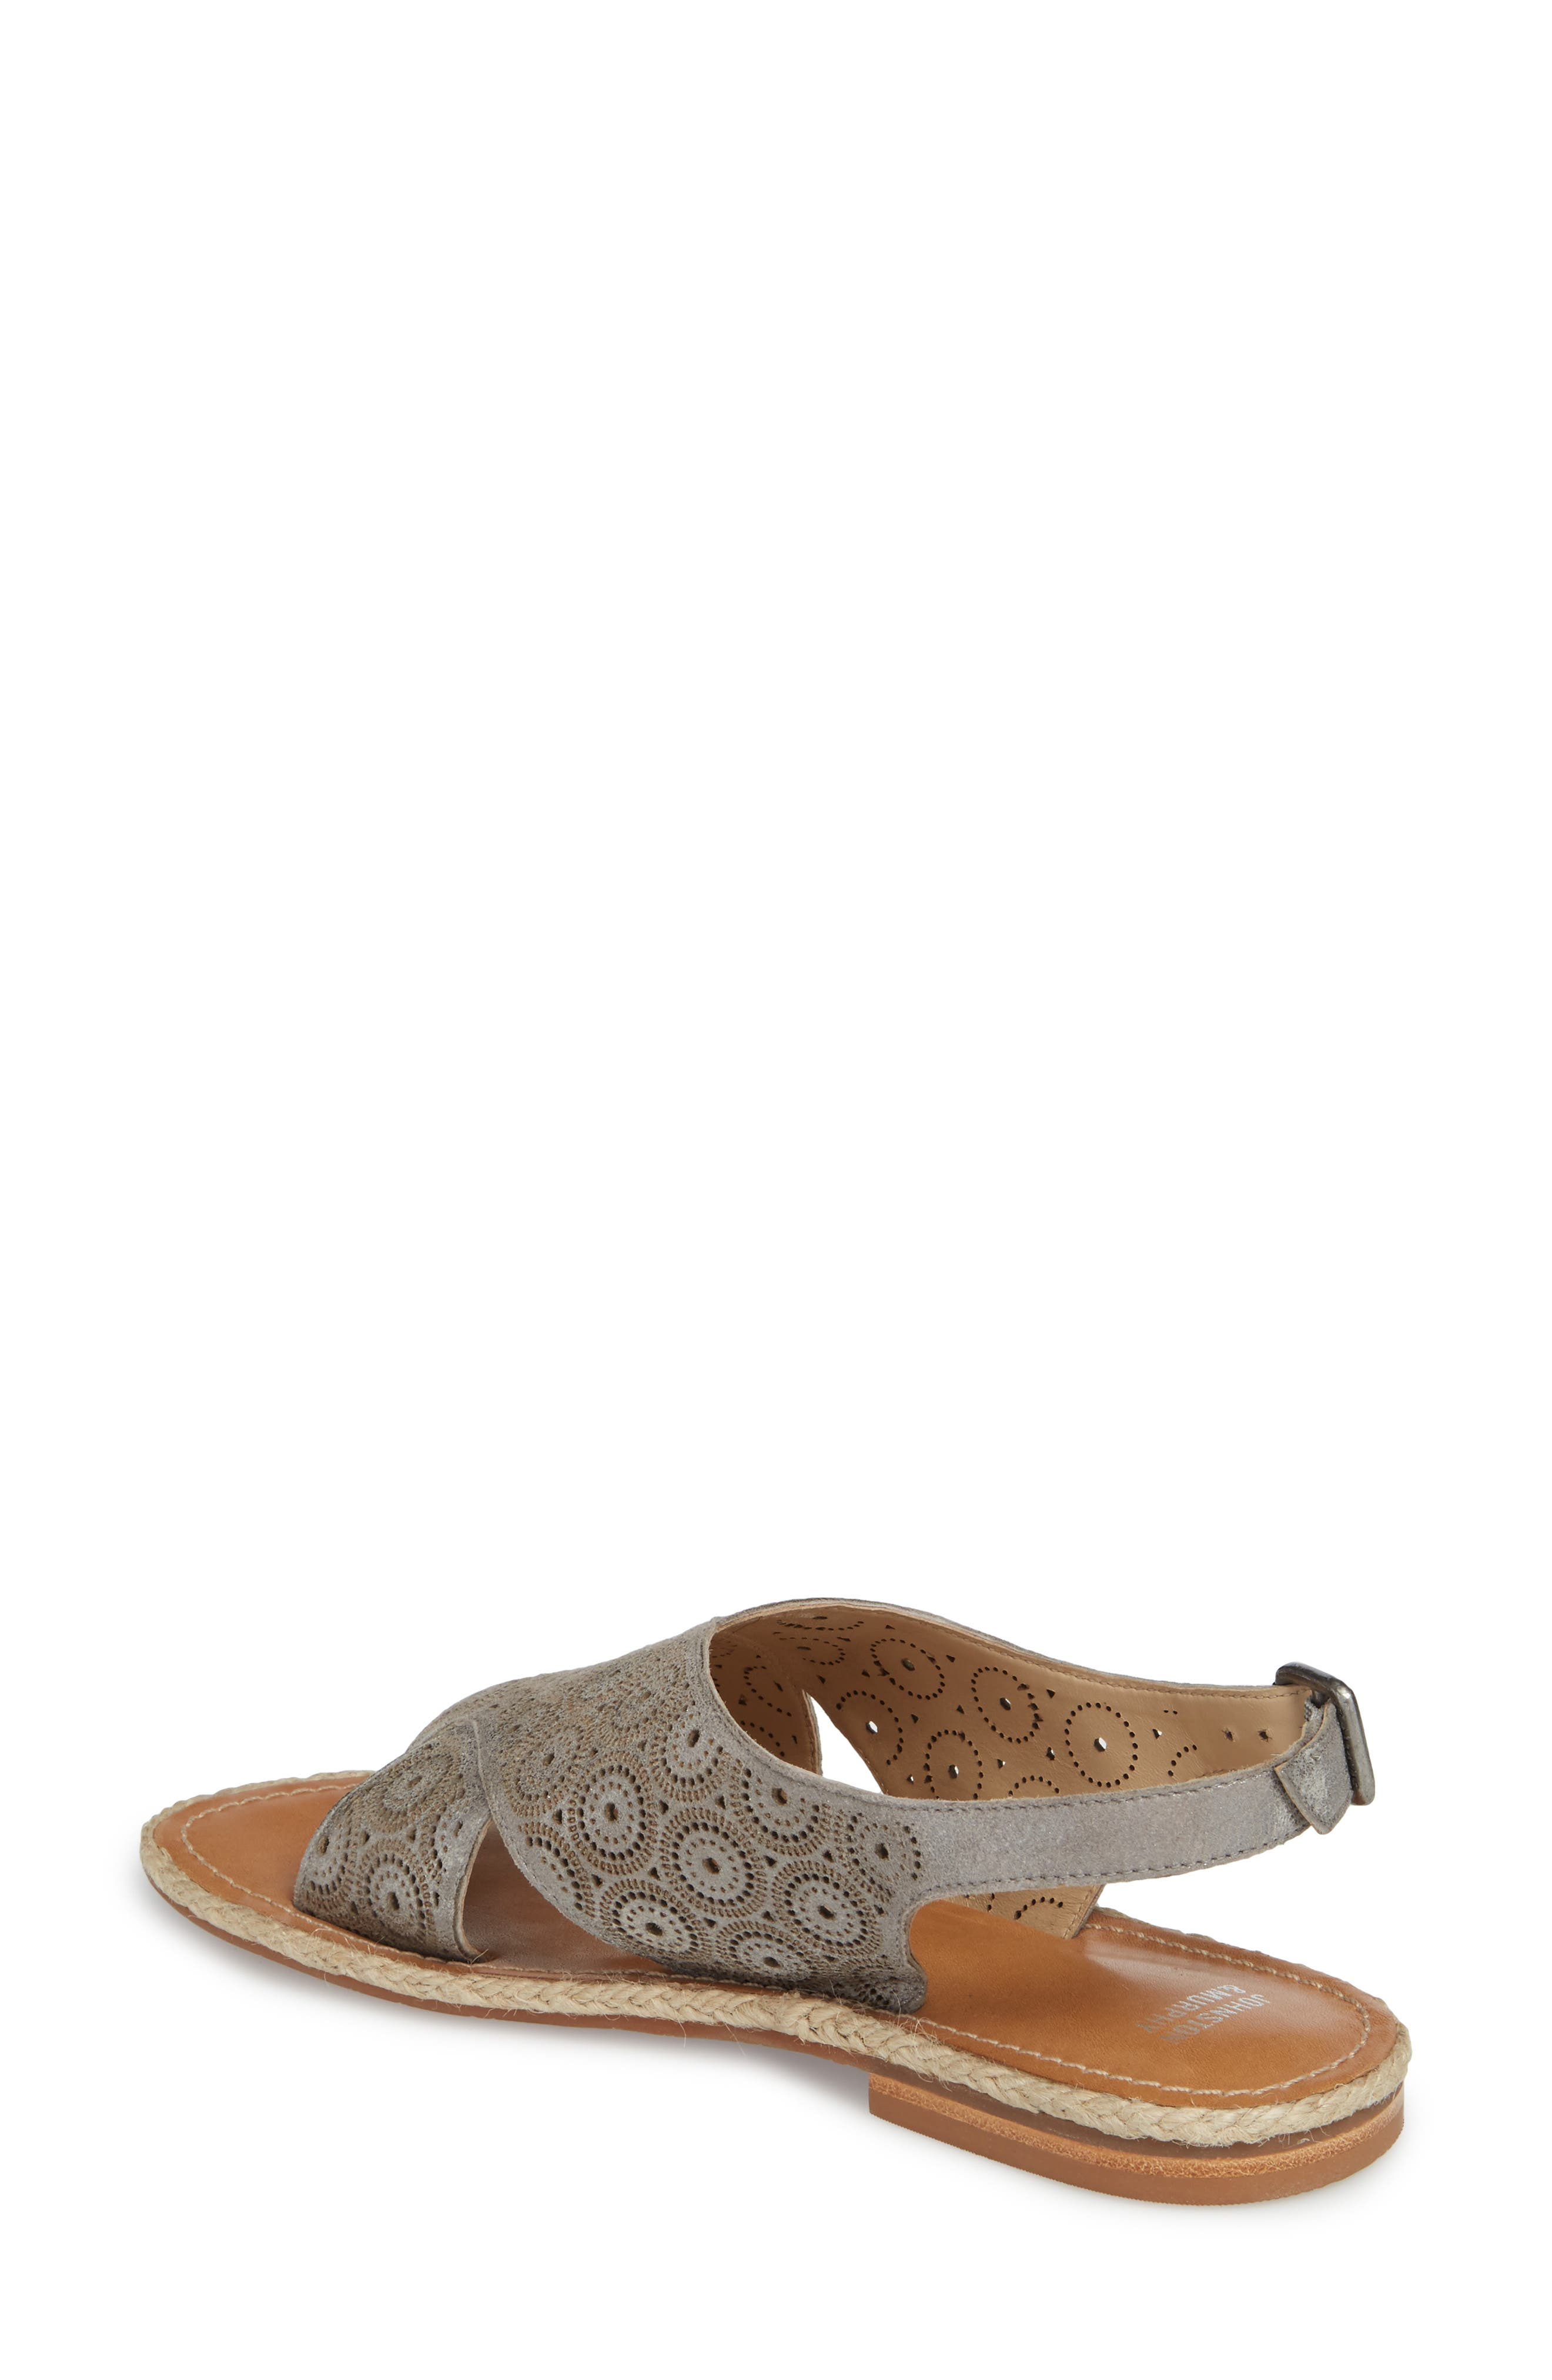 Willow Flat Sandal,                             Alternate thumbnail 2, color,                             Pewter Leather